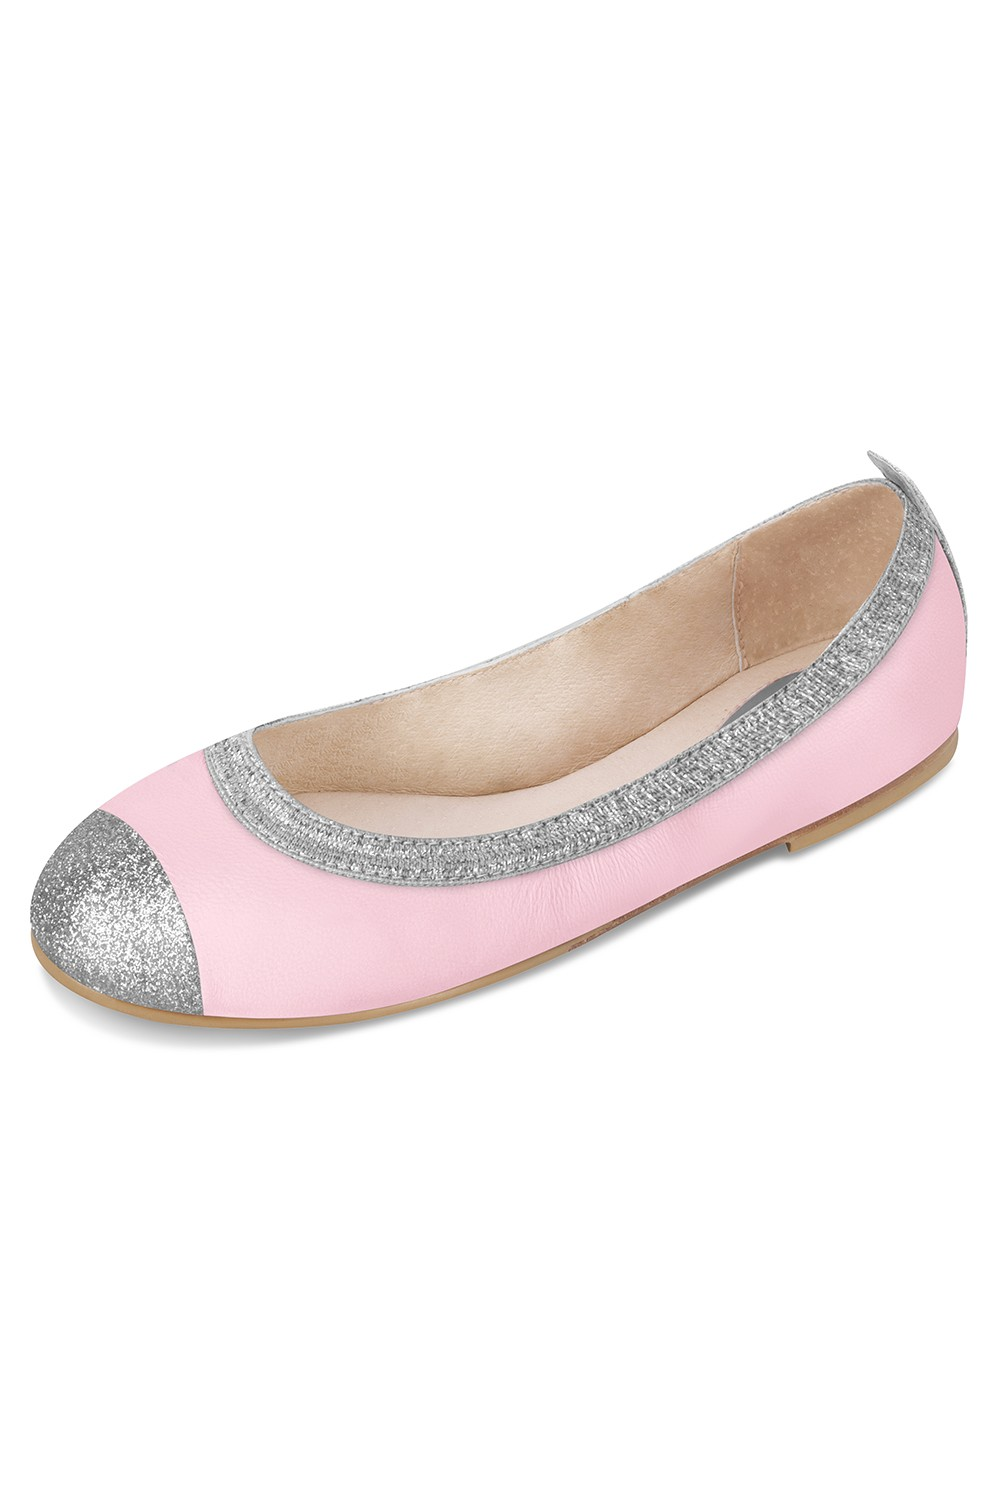 Crystelle - Girls Girls Fashion Shoes